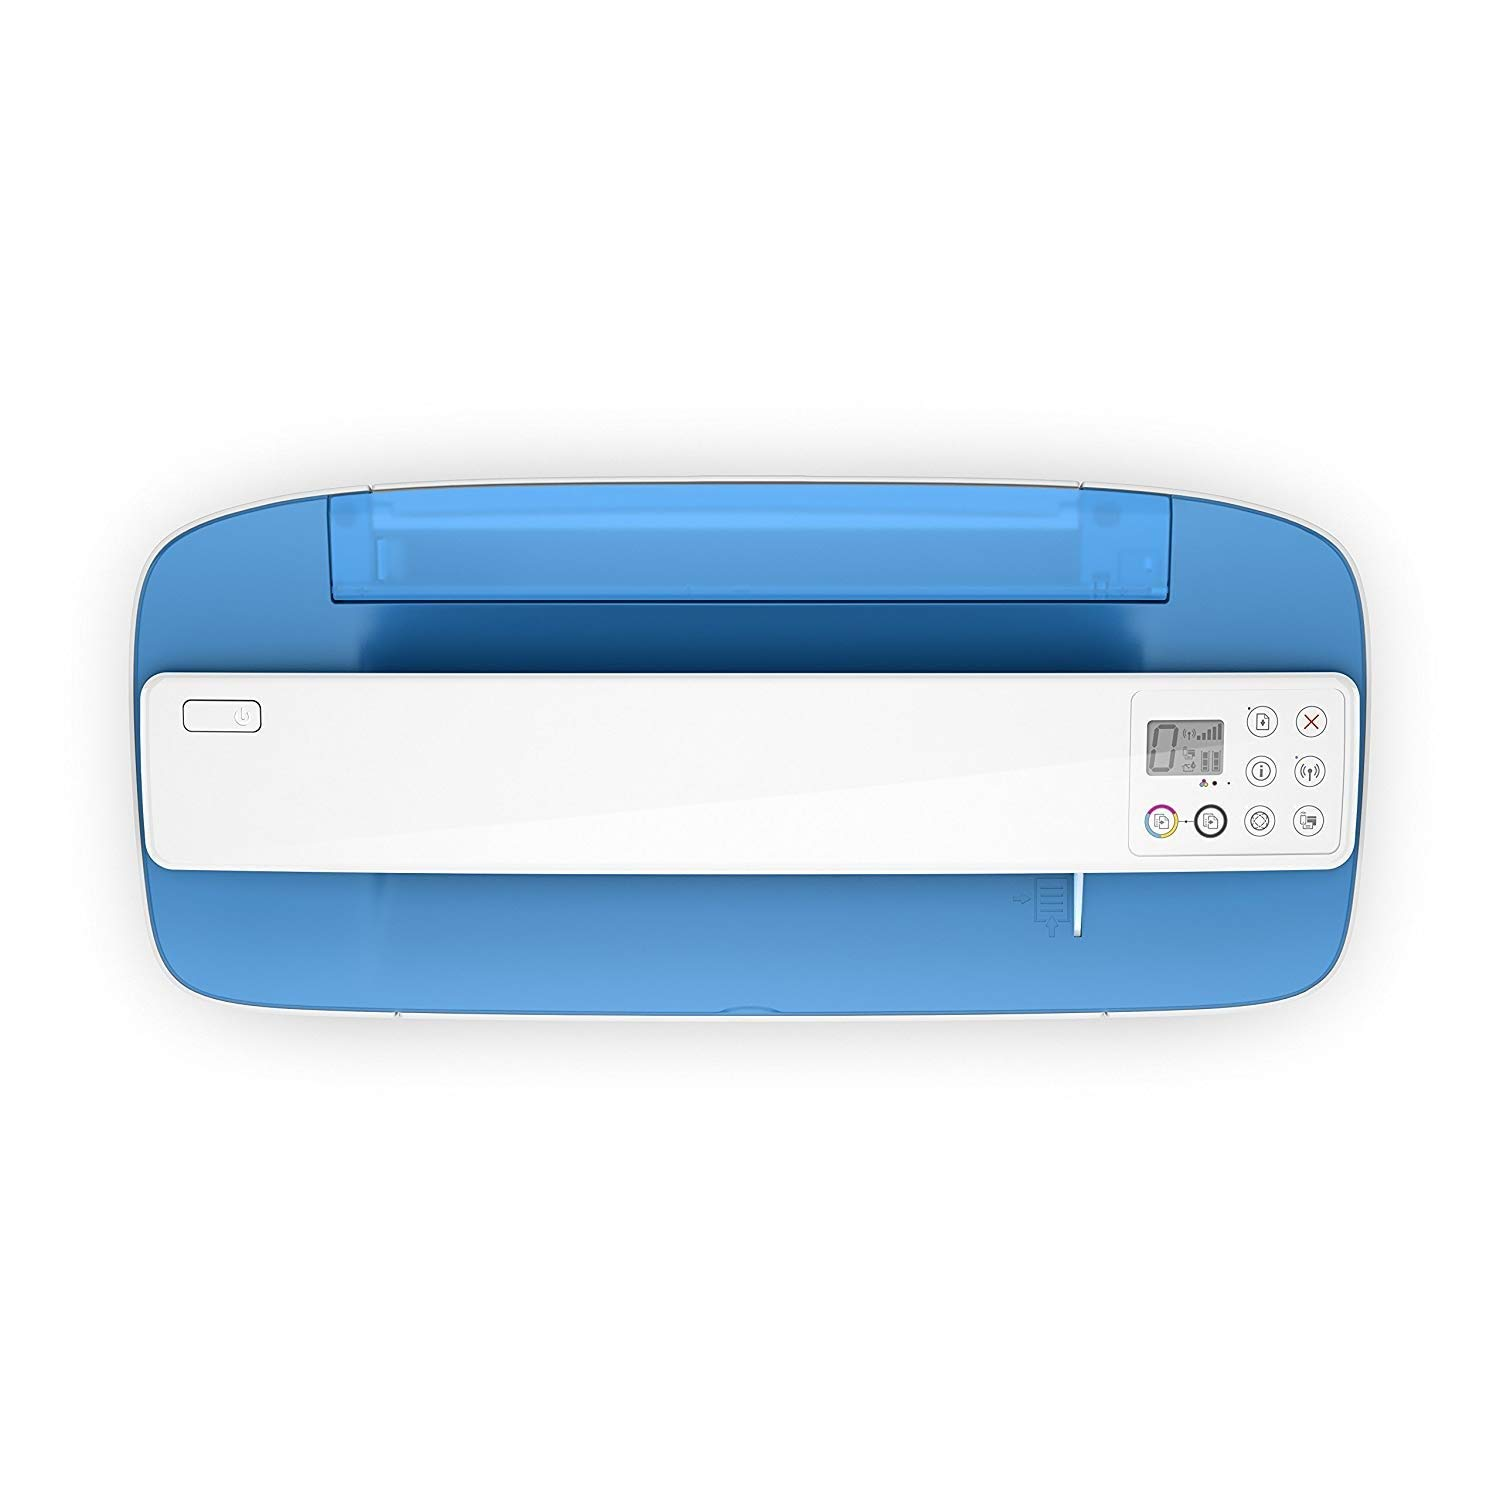 HP DeskJet 3755 All-in-One Printer - We Sell At Best Prices